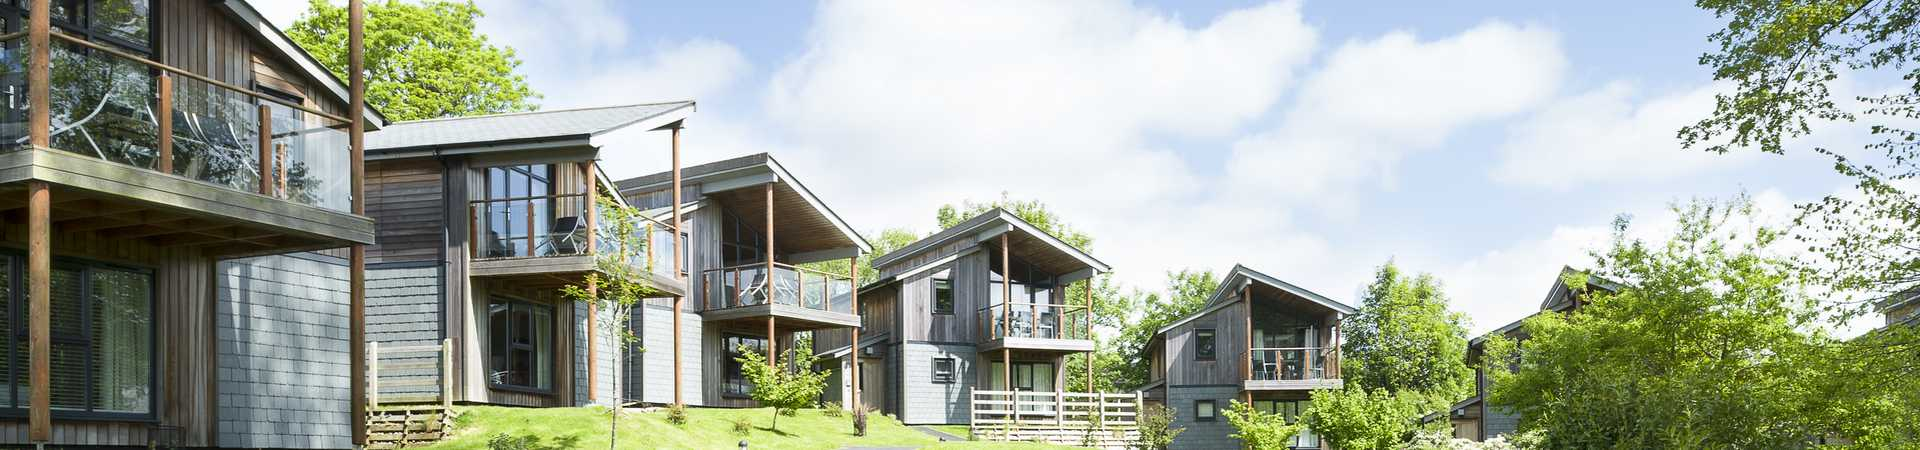 Woodland Lodges in Cornwall